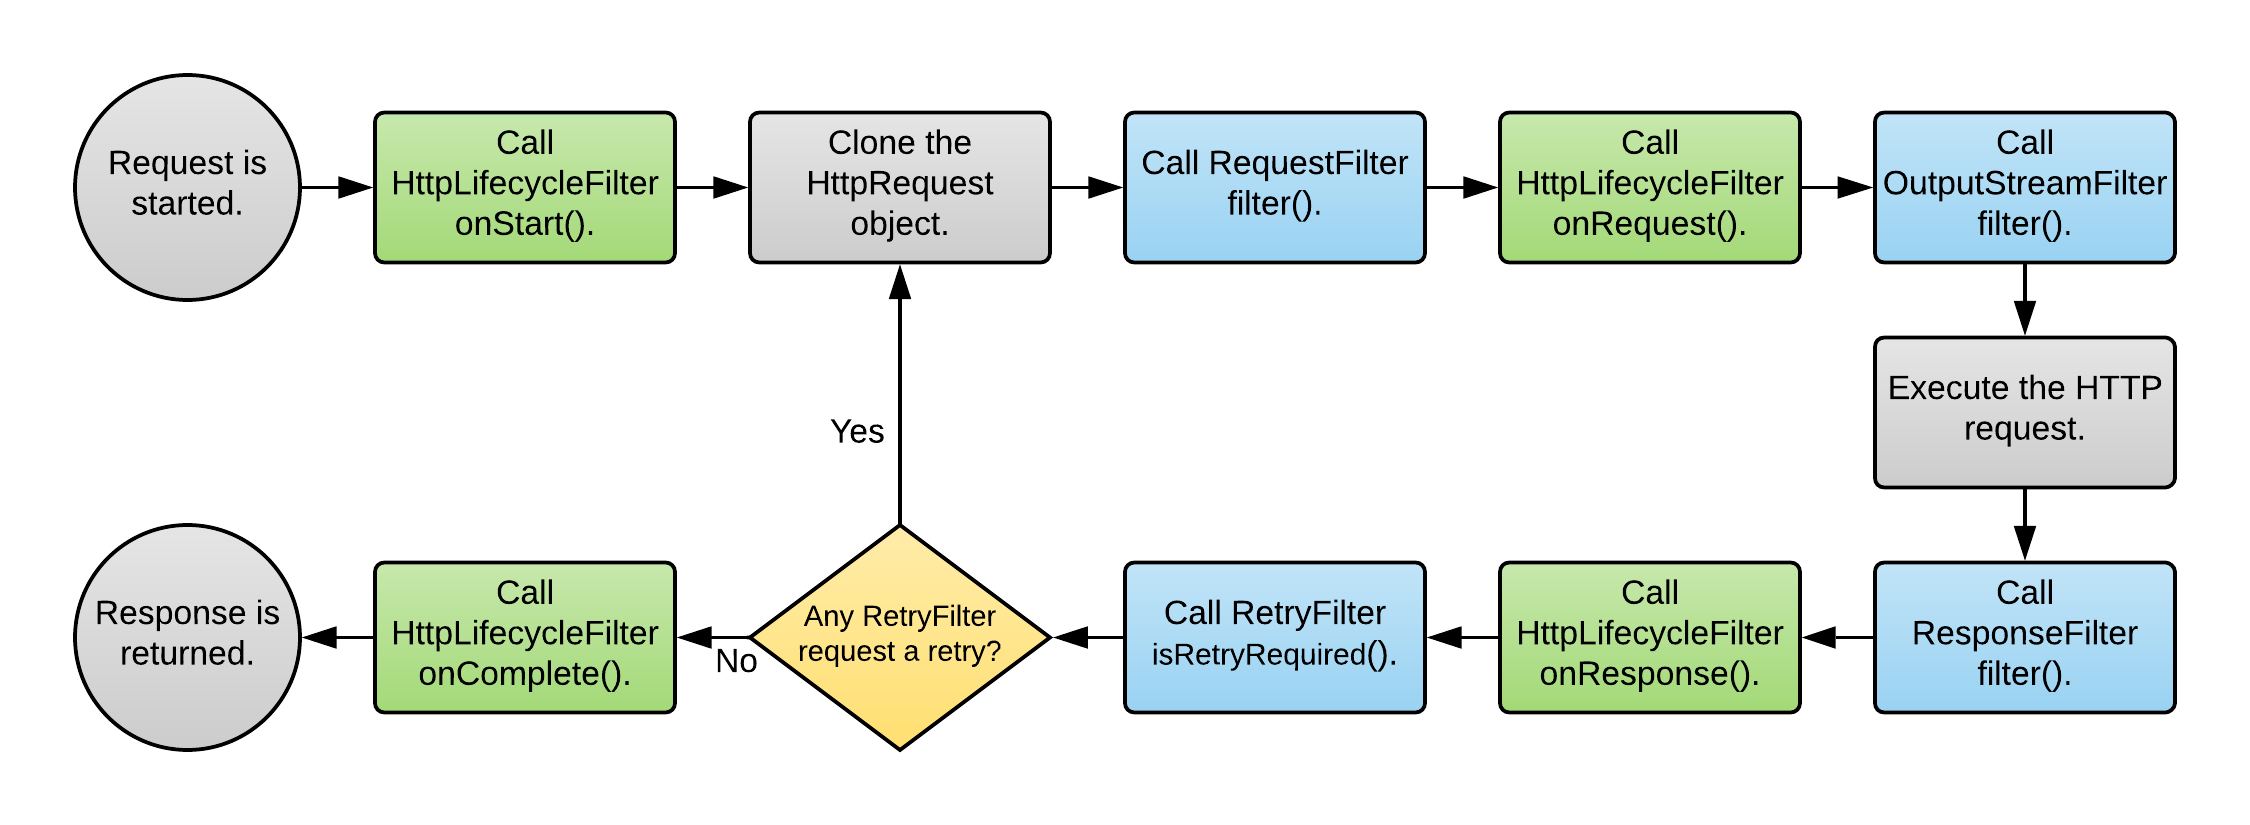 HTTP Requests Library Documentation